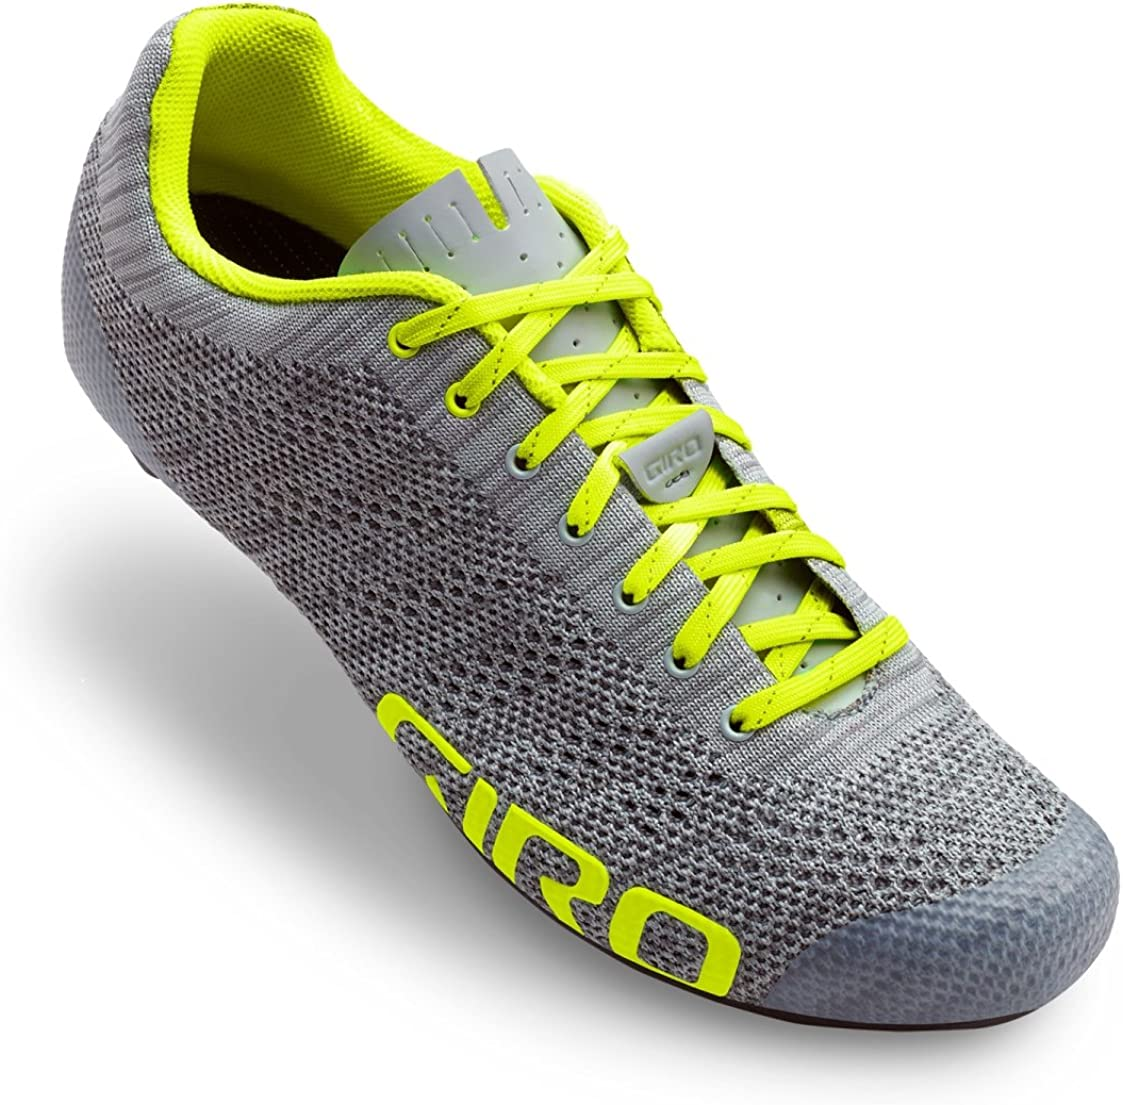 Giro mens Shoes wholesale New product!! Cycling